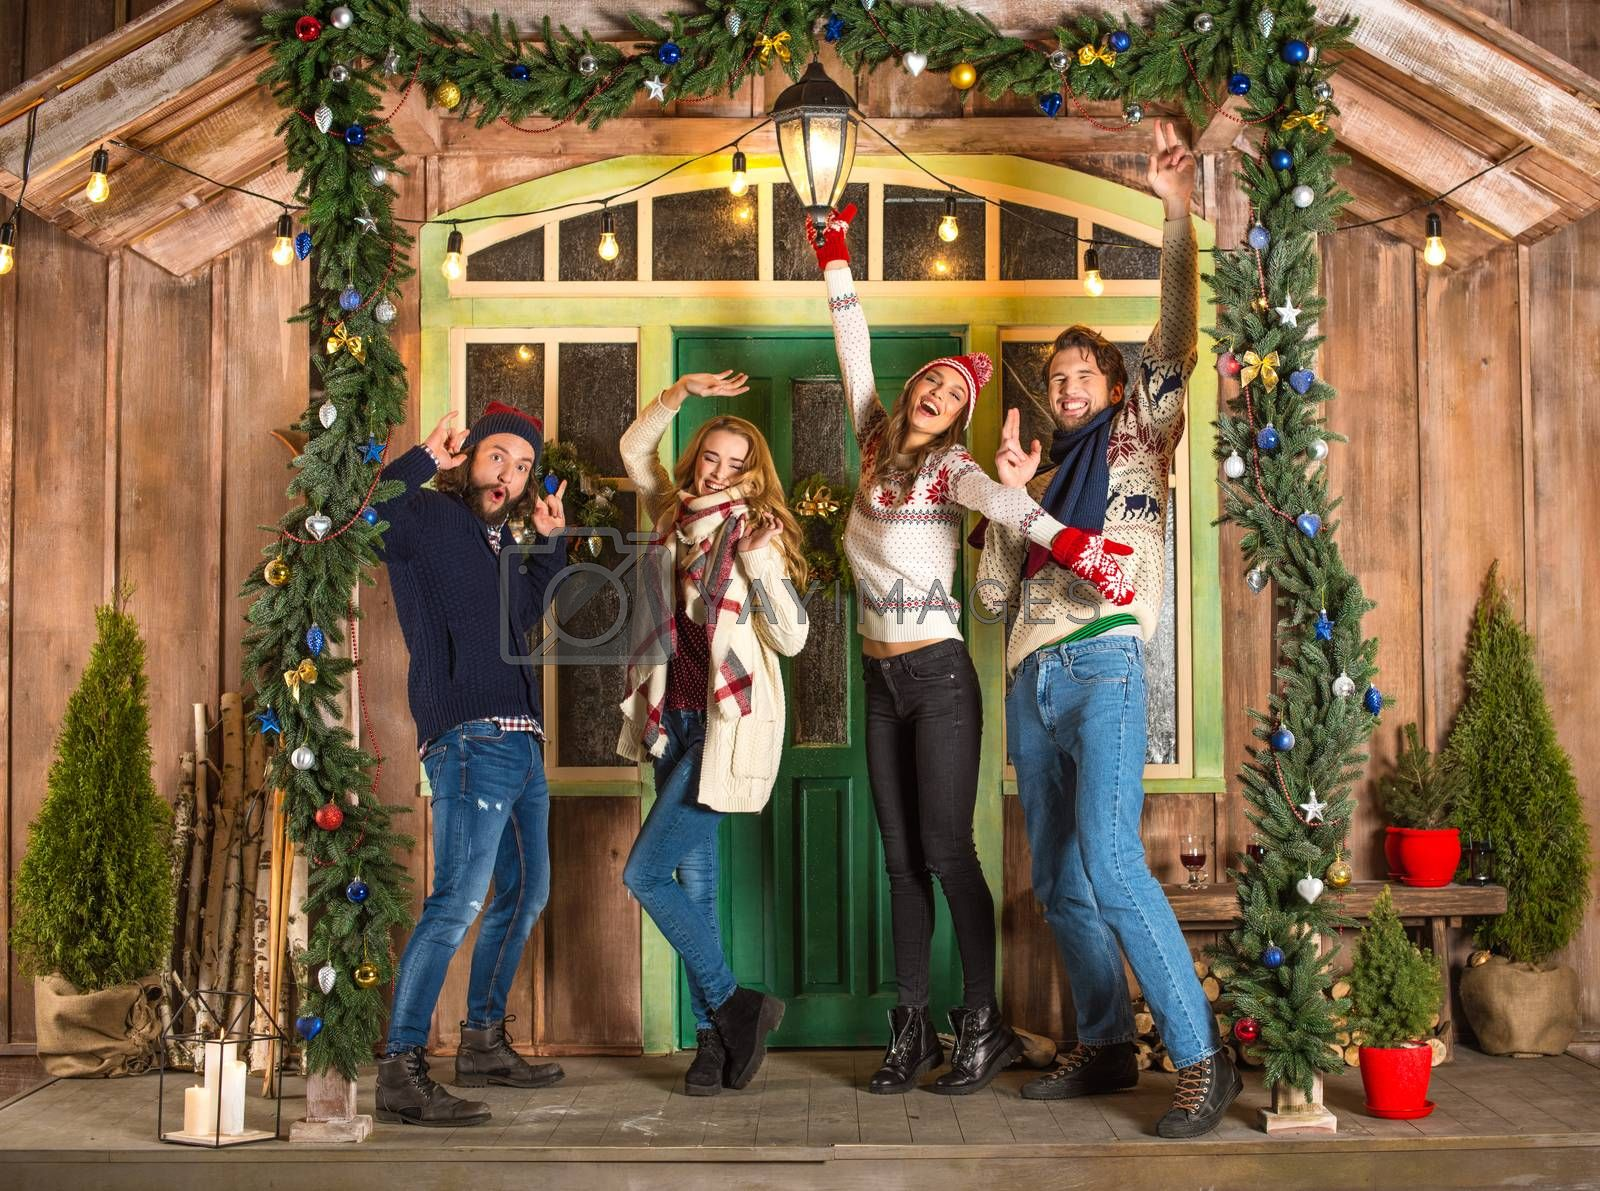 Group of happy young people having fun at christmastime